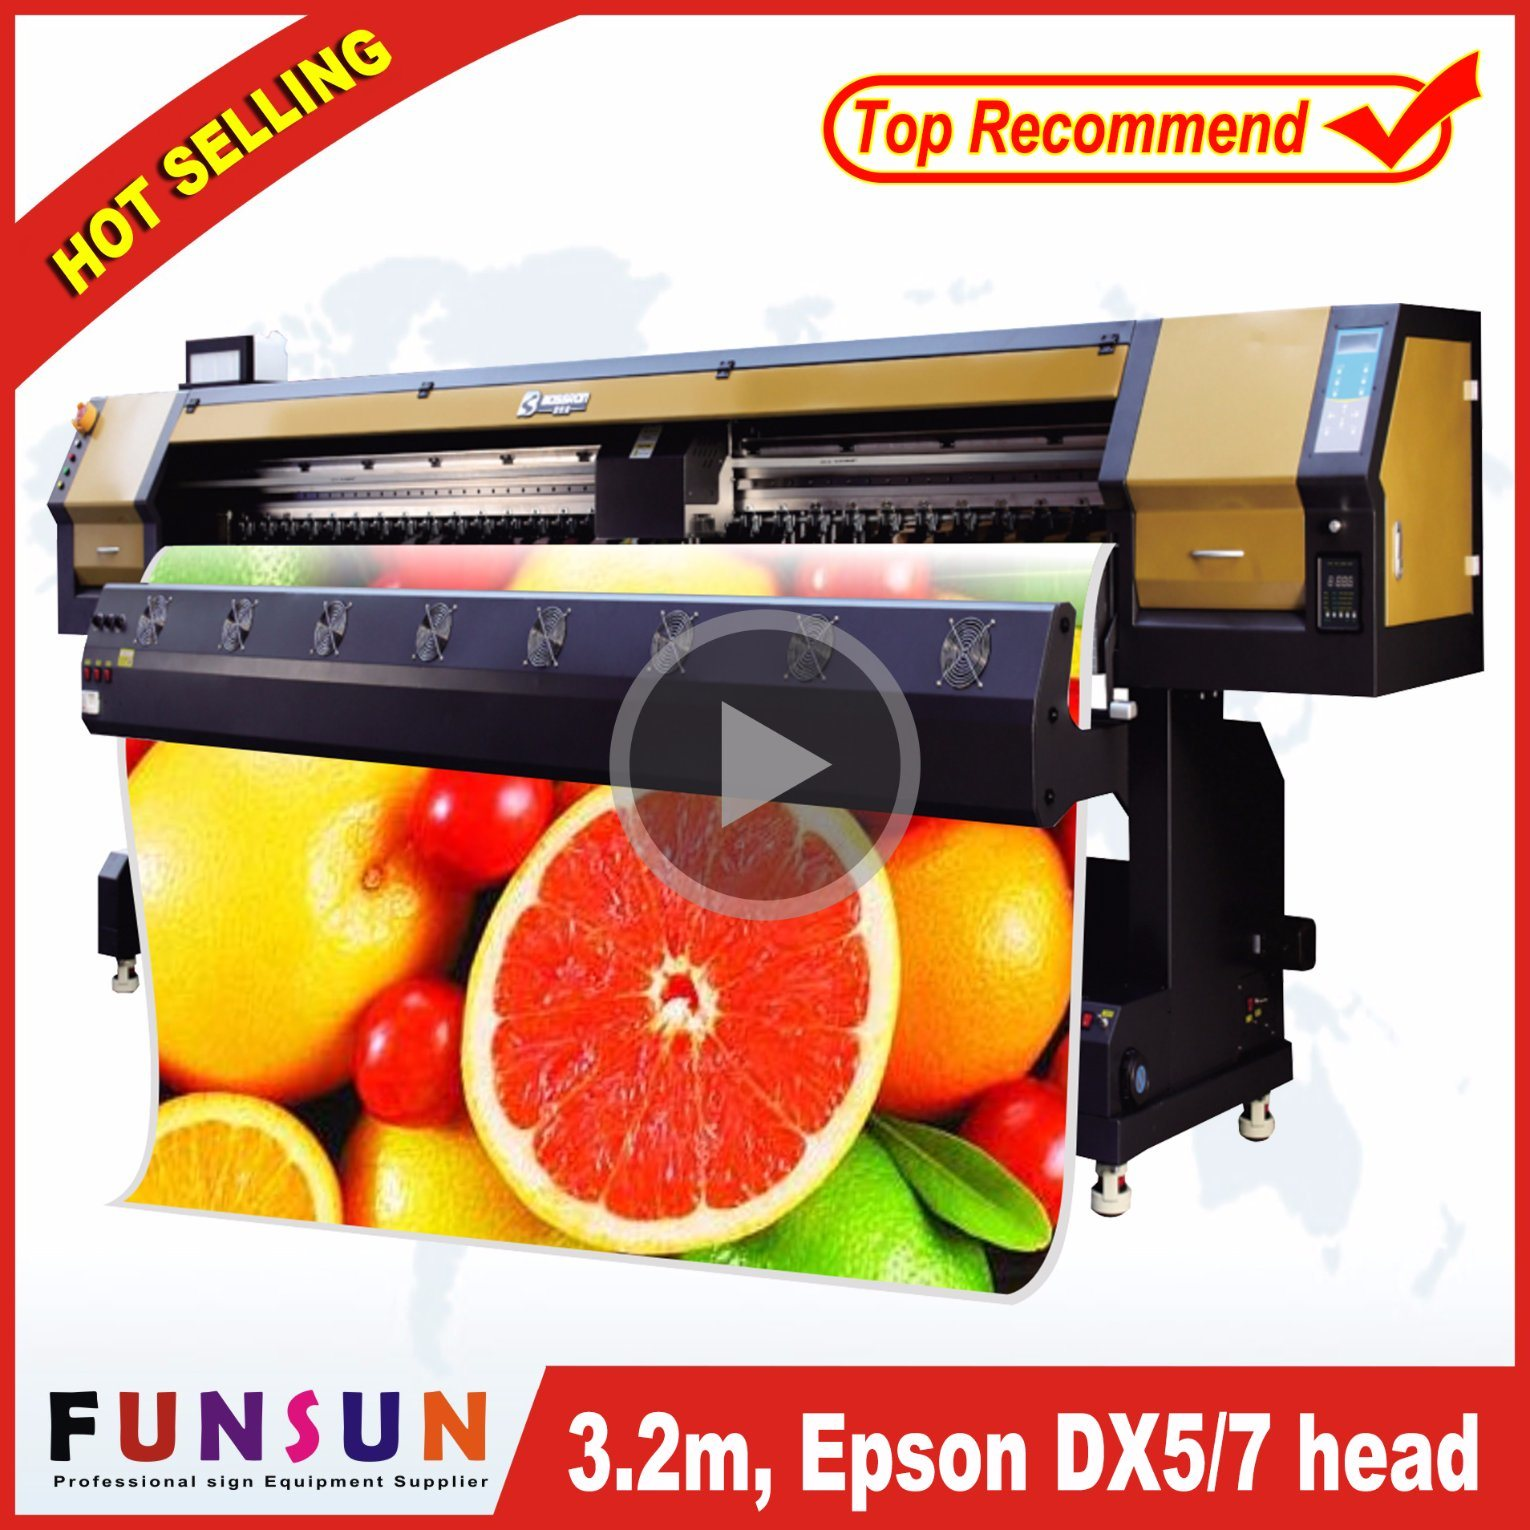 China big discount funsunjet fs 3202g 3 2m 10ft outdoor wide format printer with two dx5 heads 1440dpi for vinyl sticker printing china solvent printer